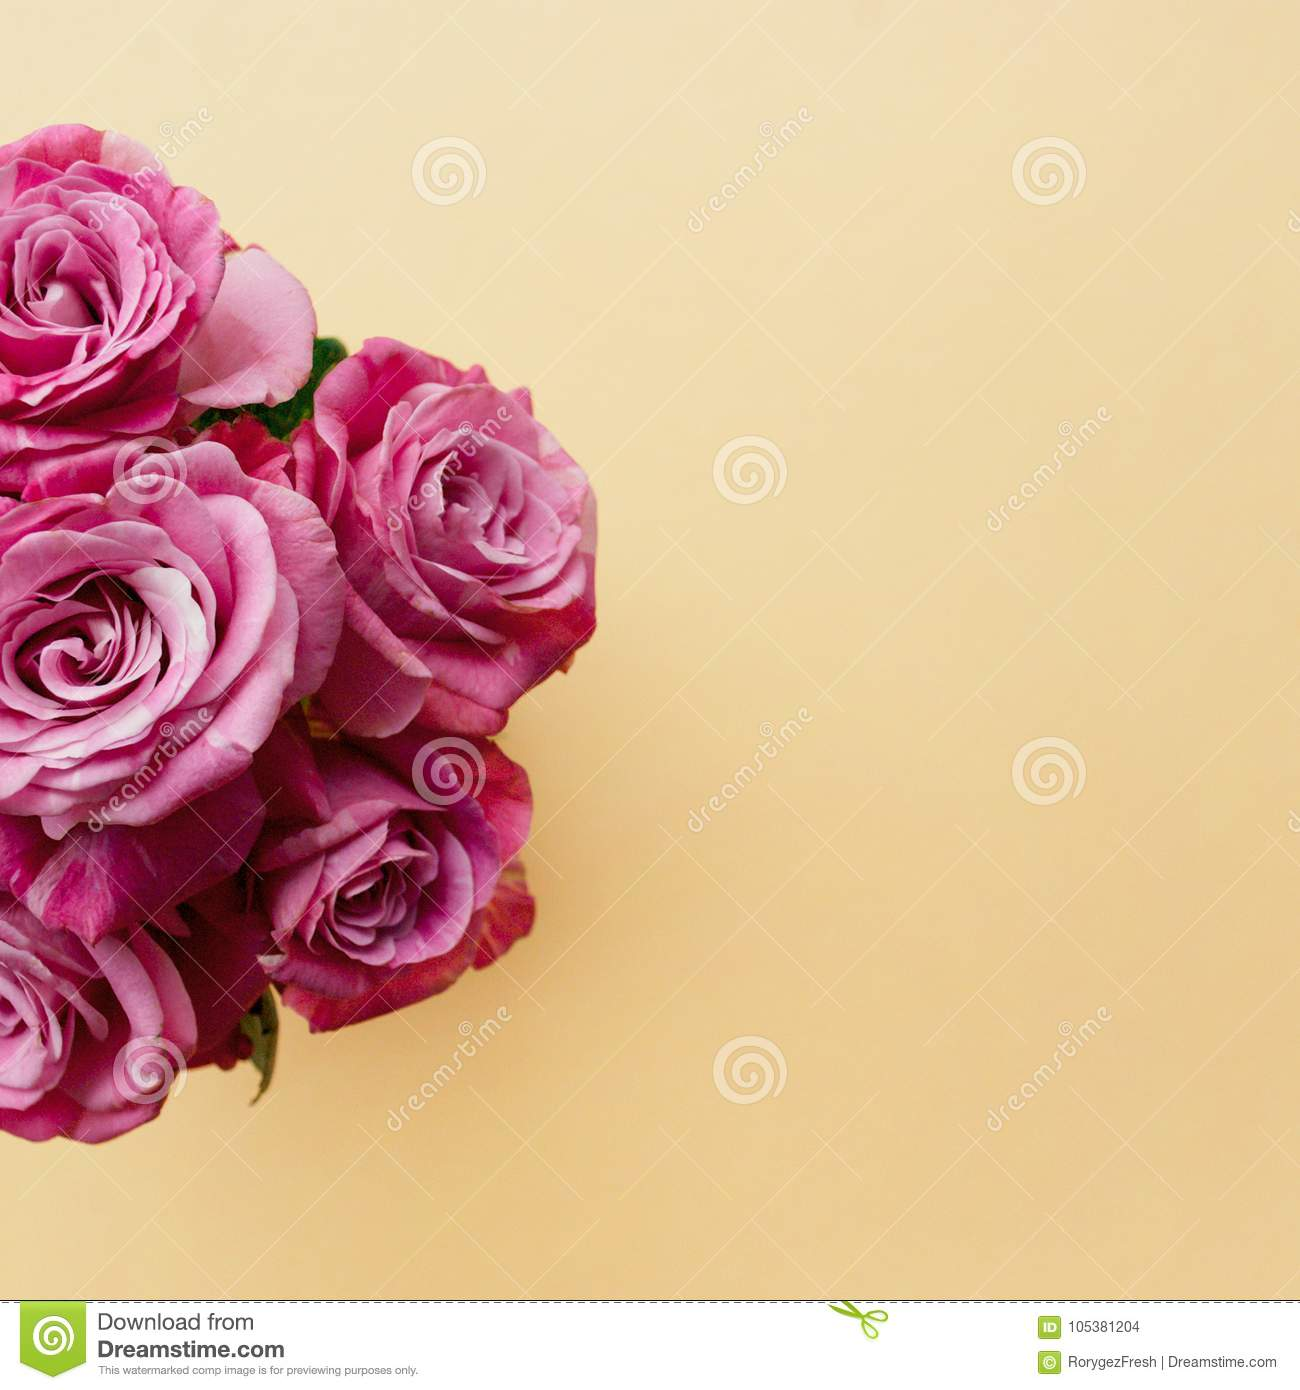 Beautiful bouquet of pink roses on a pale peach pastel background.